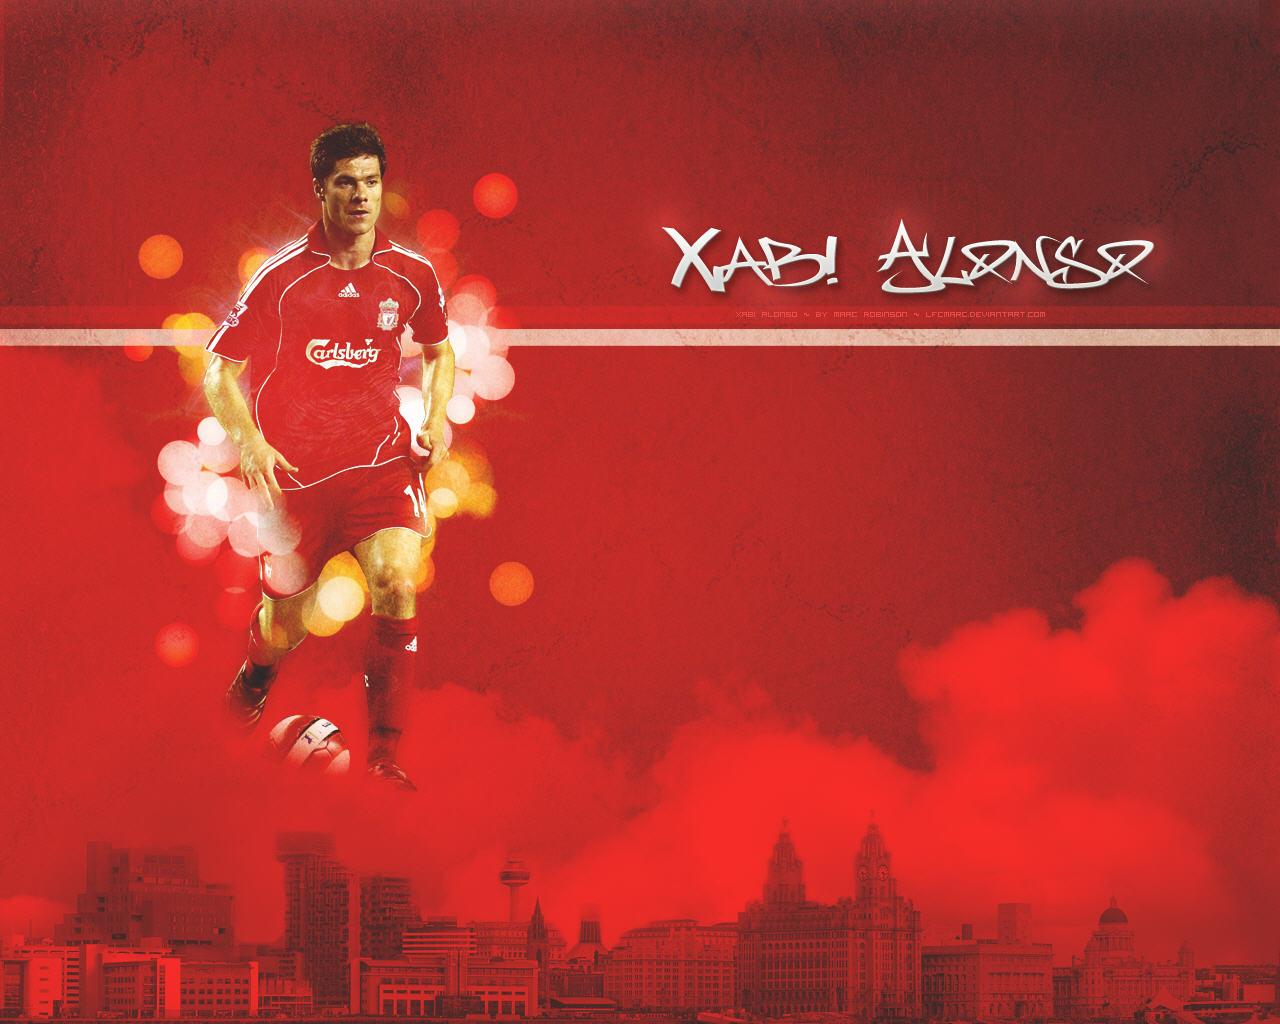 1280x1024 - Xabi Alonso Wallpapers 14